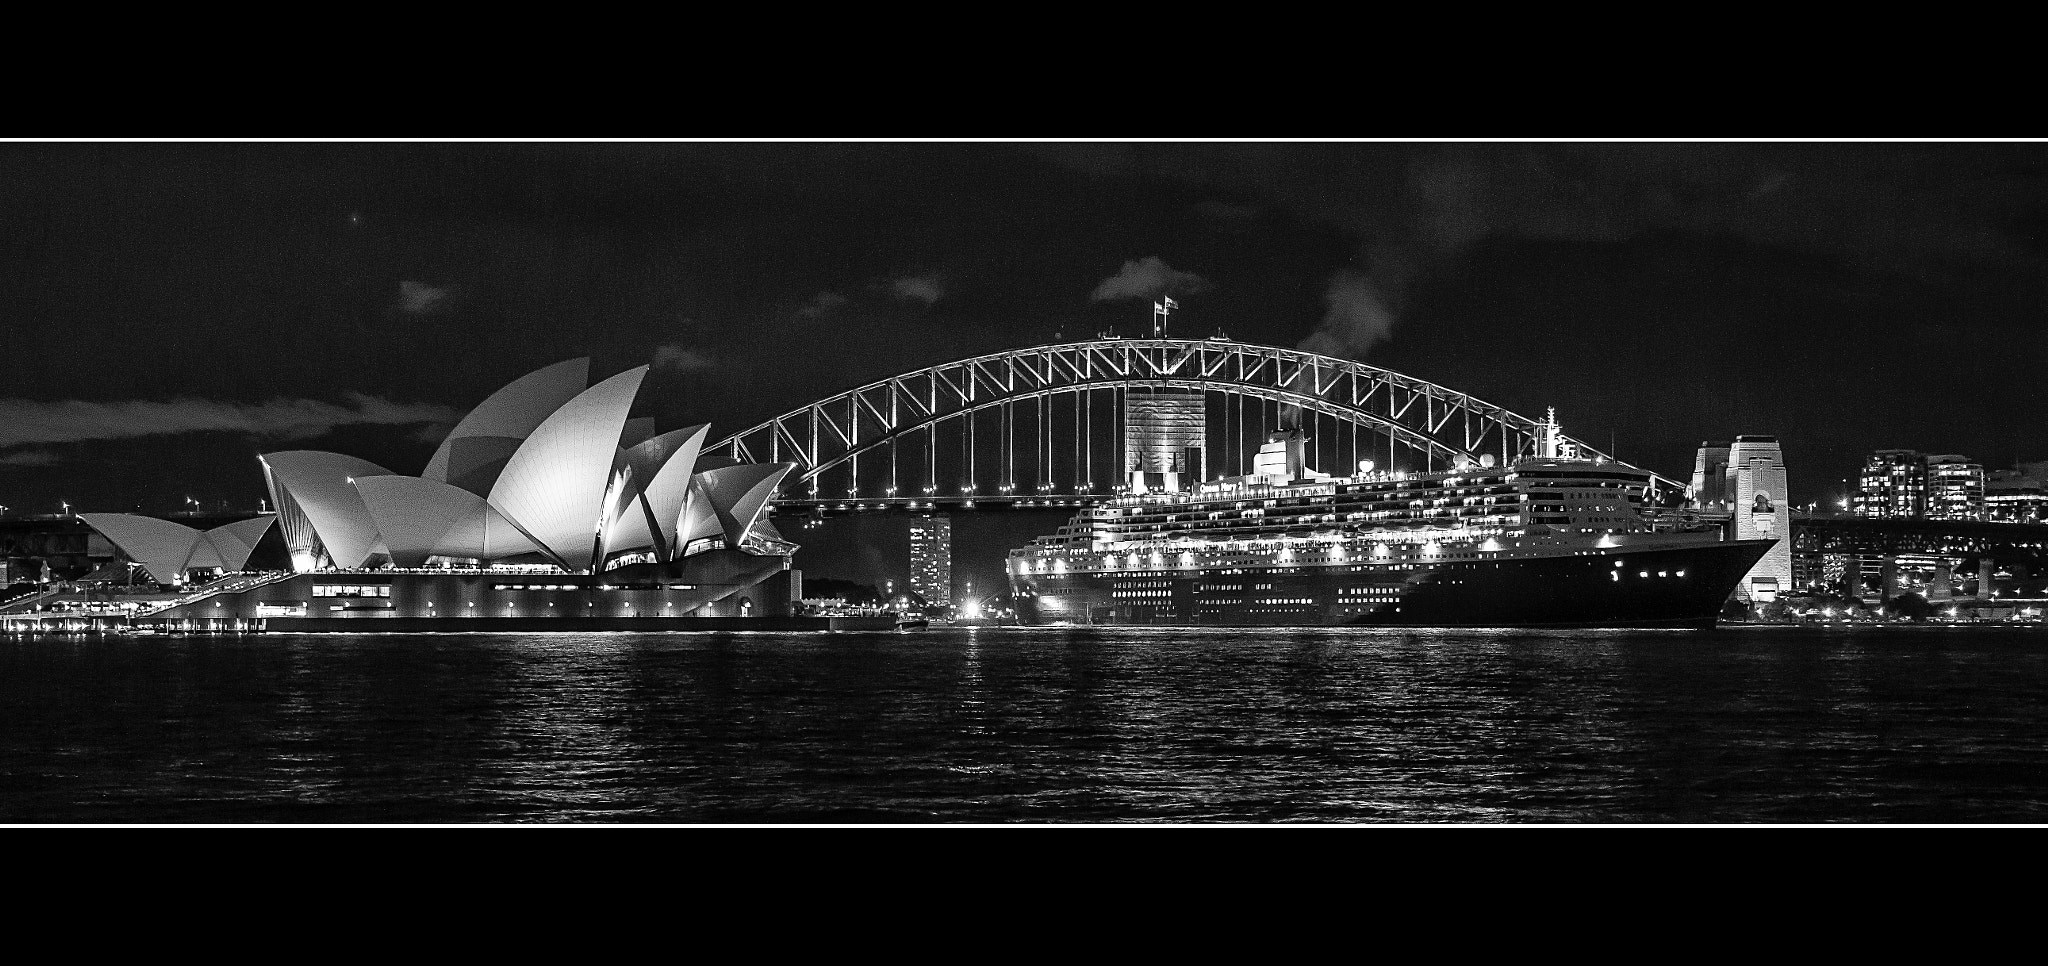 Photograph Queen Mary 2 and the Icons by Stanley Kozak on 500px